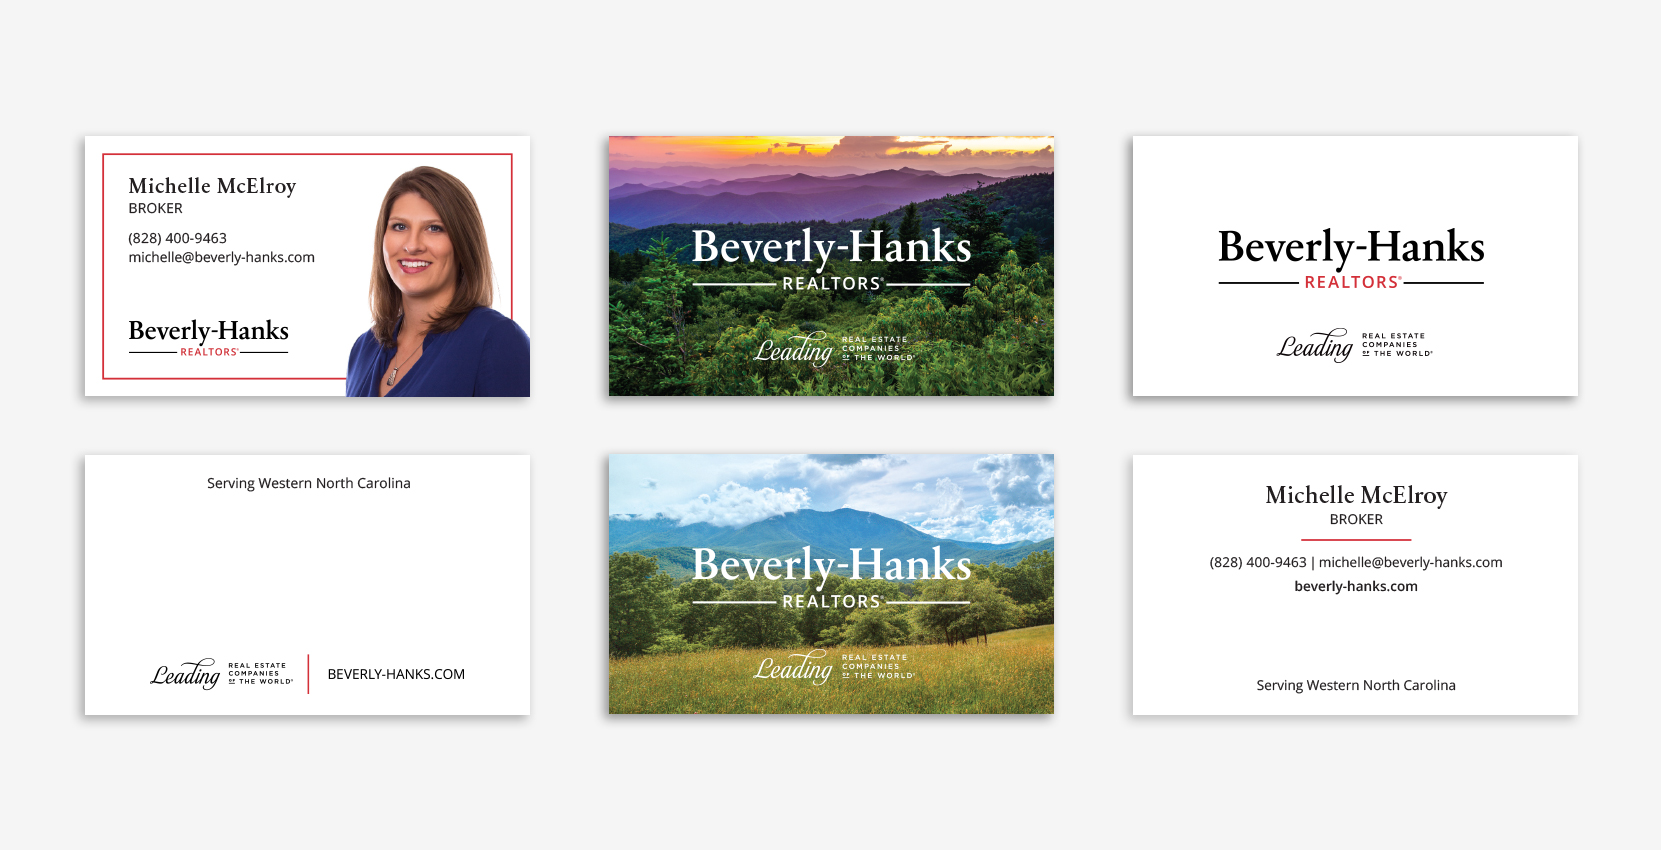 BH_businesscards_portfolio.jpg